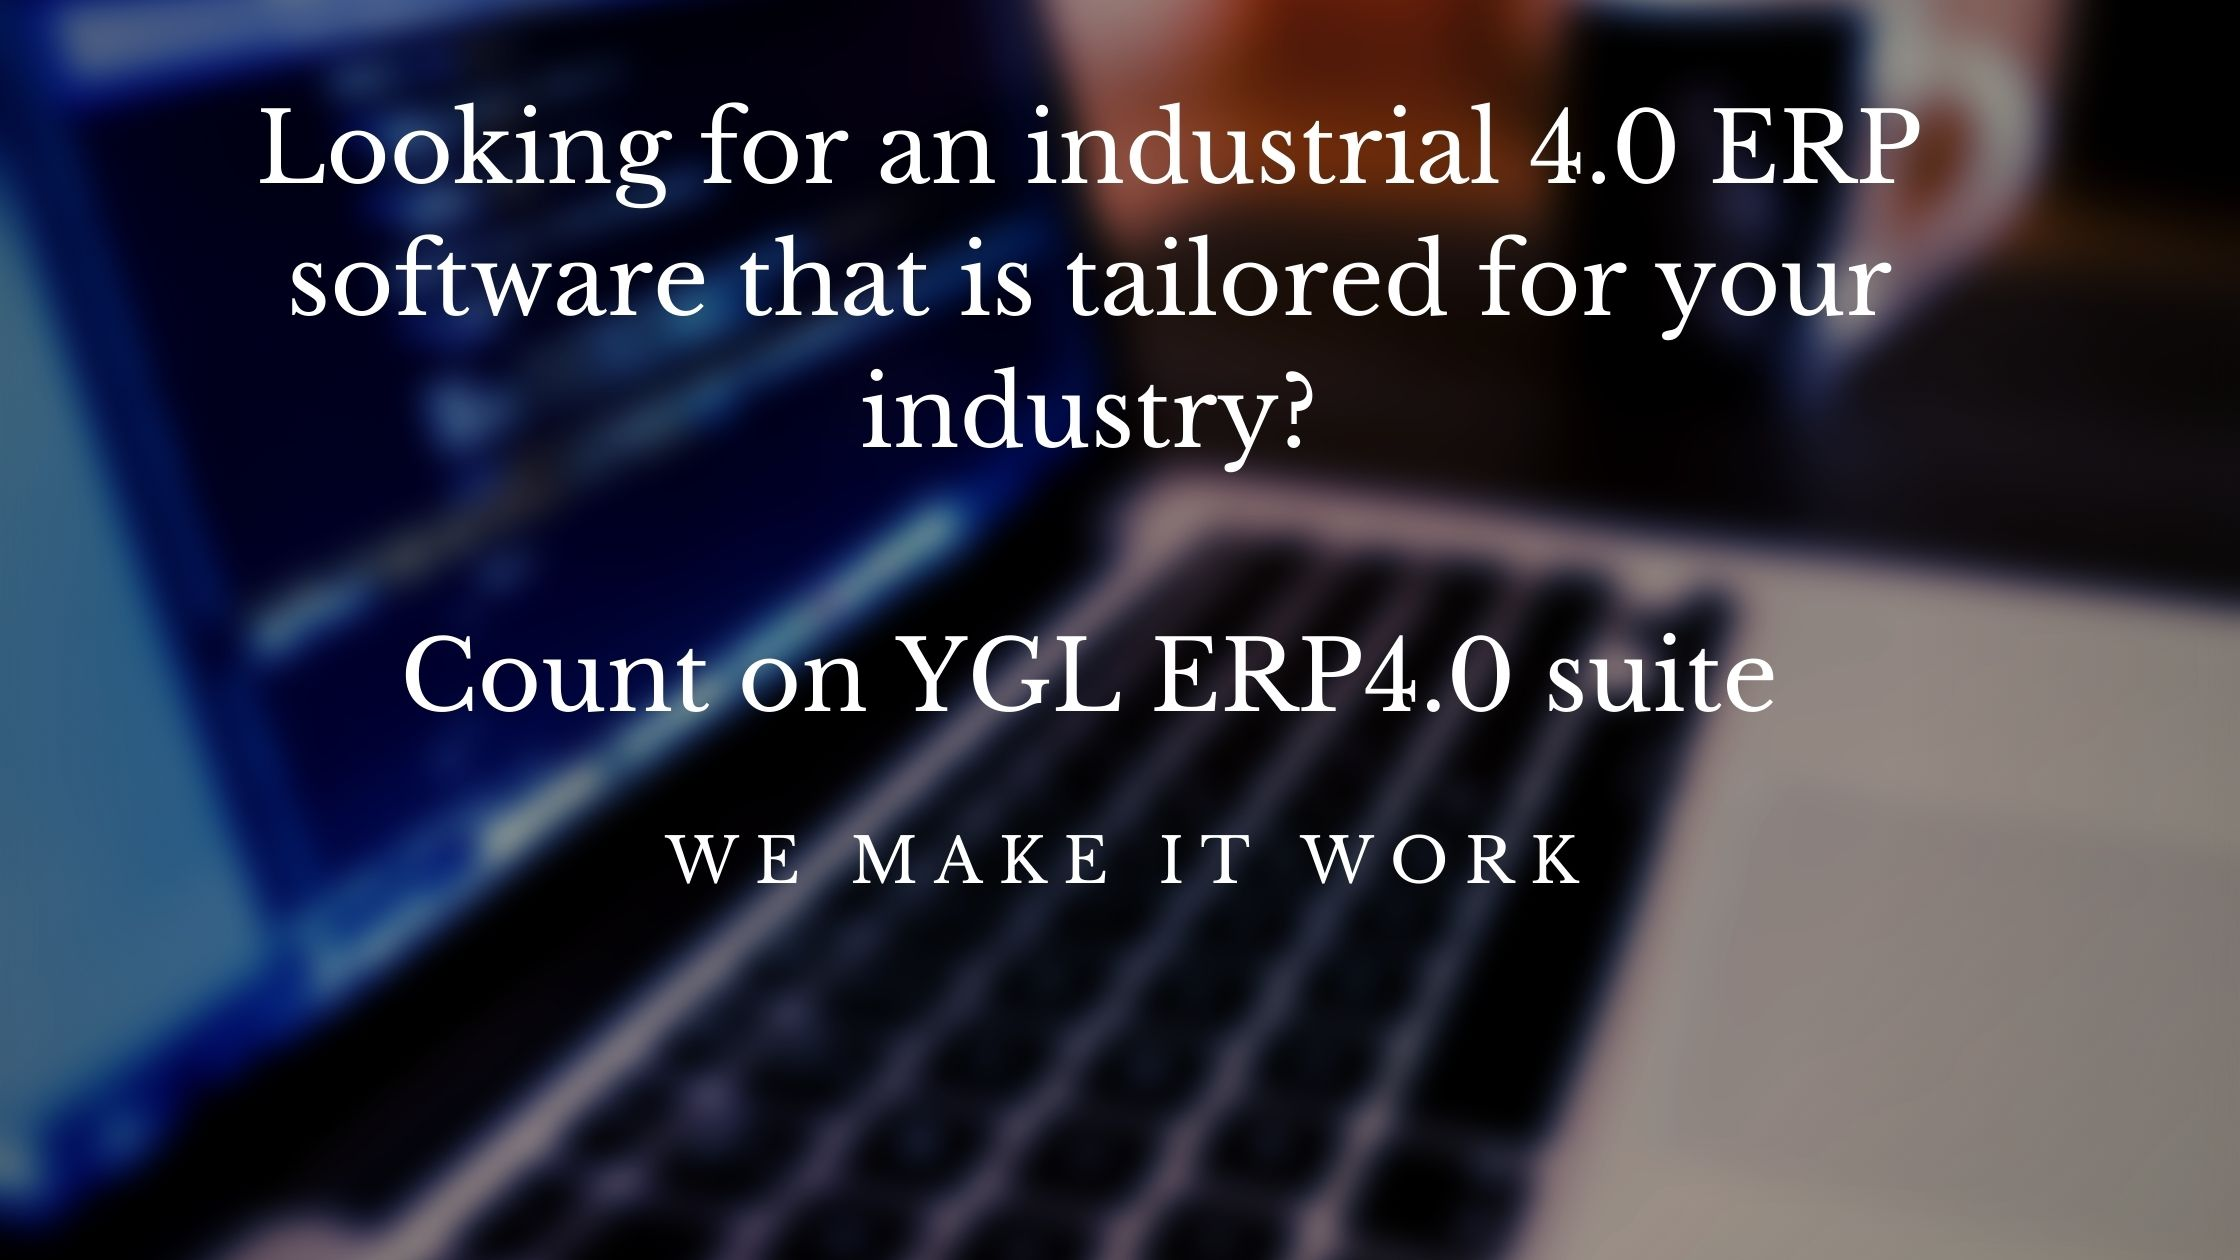 Looking for an industrial 4.0 ERP software that is tailored for your industry?